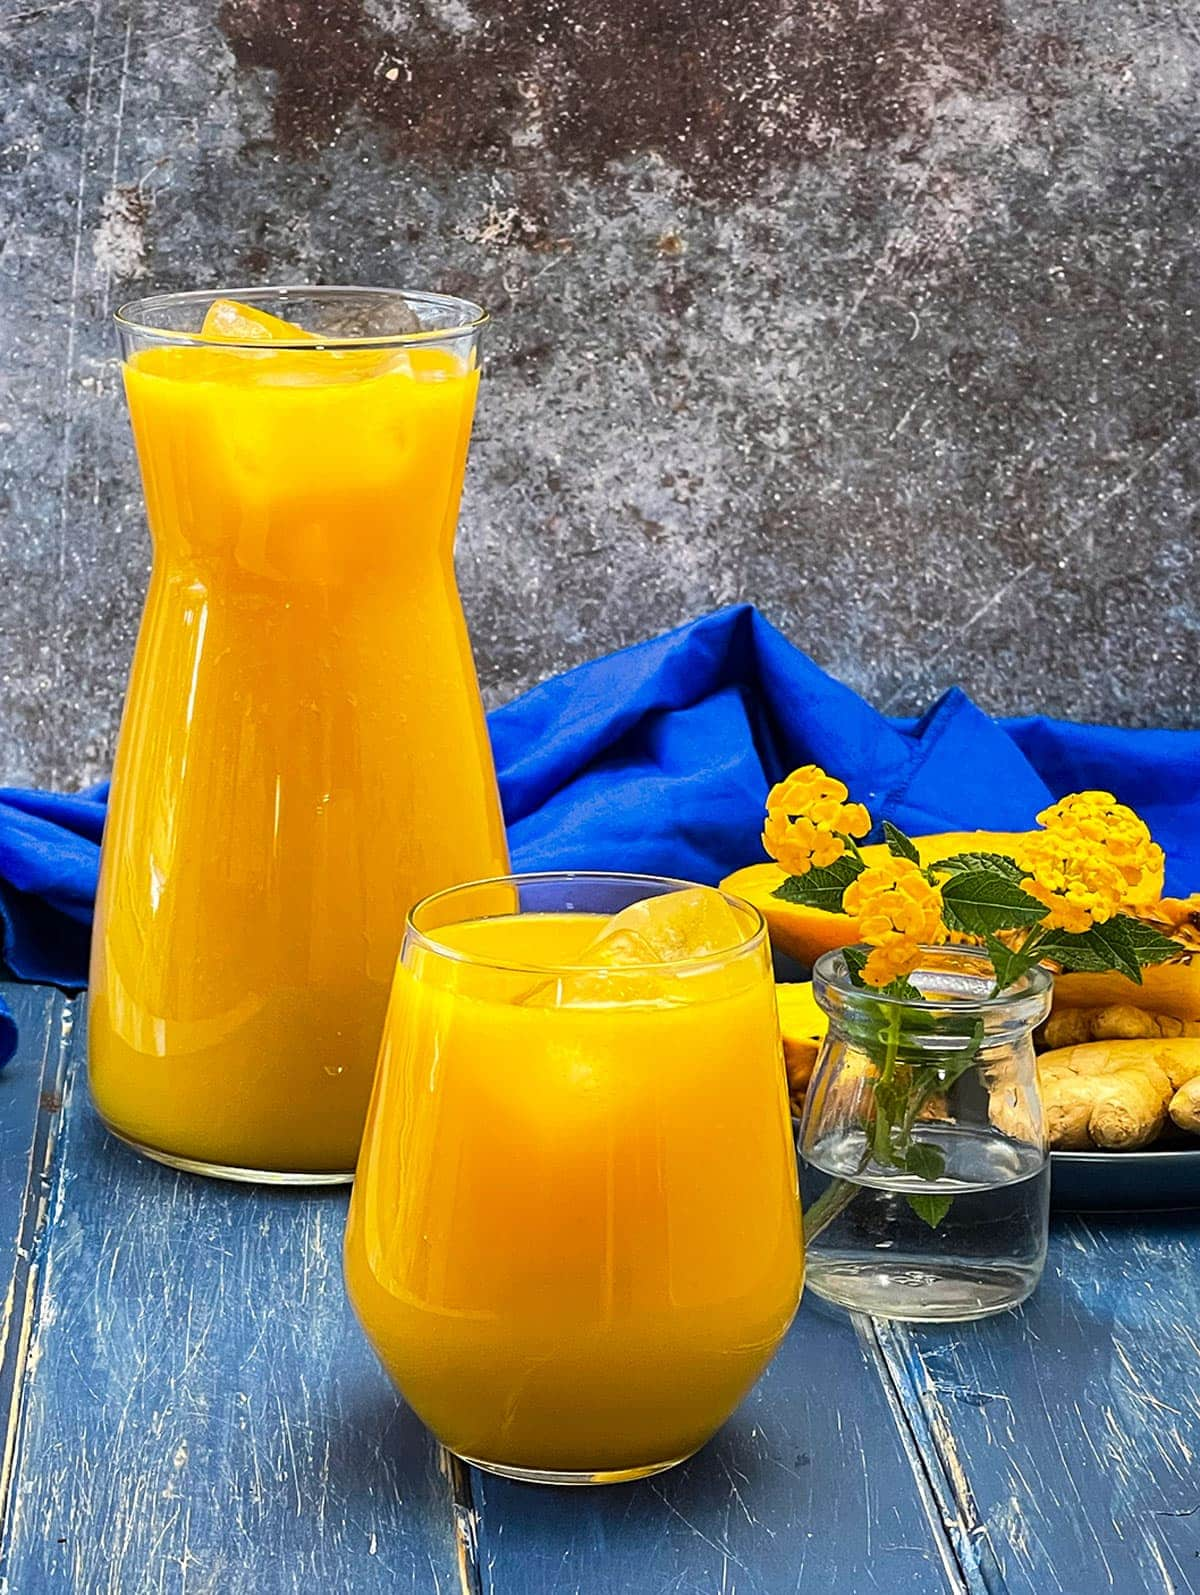 mango pineapple juice in a flask and glass on a blue wooden background with a blue napkin